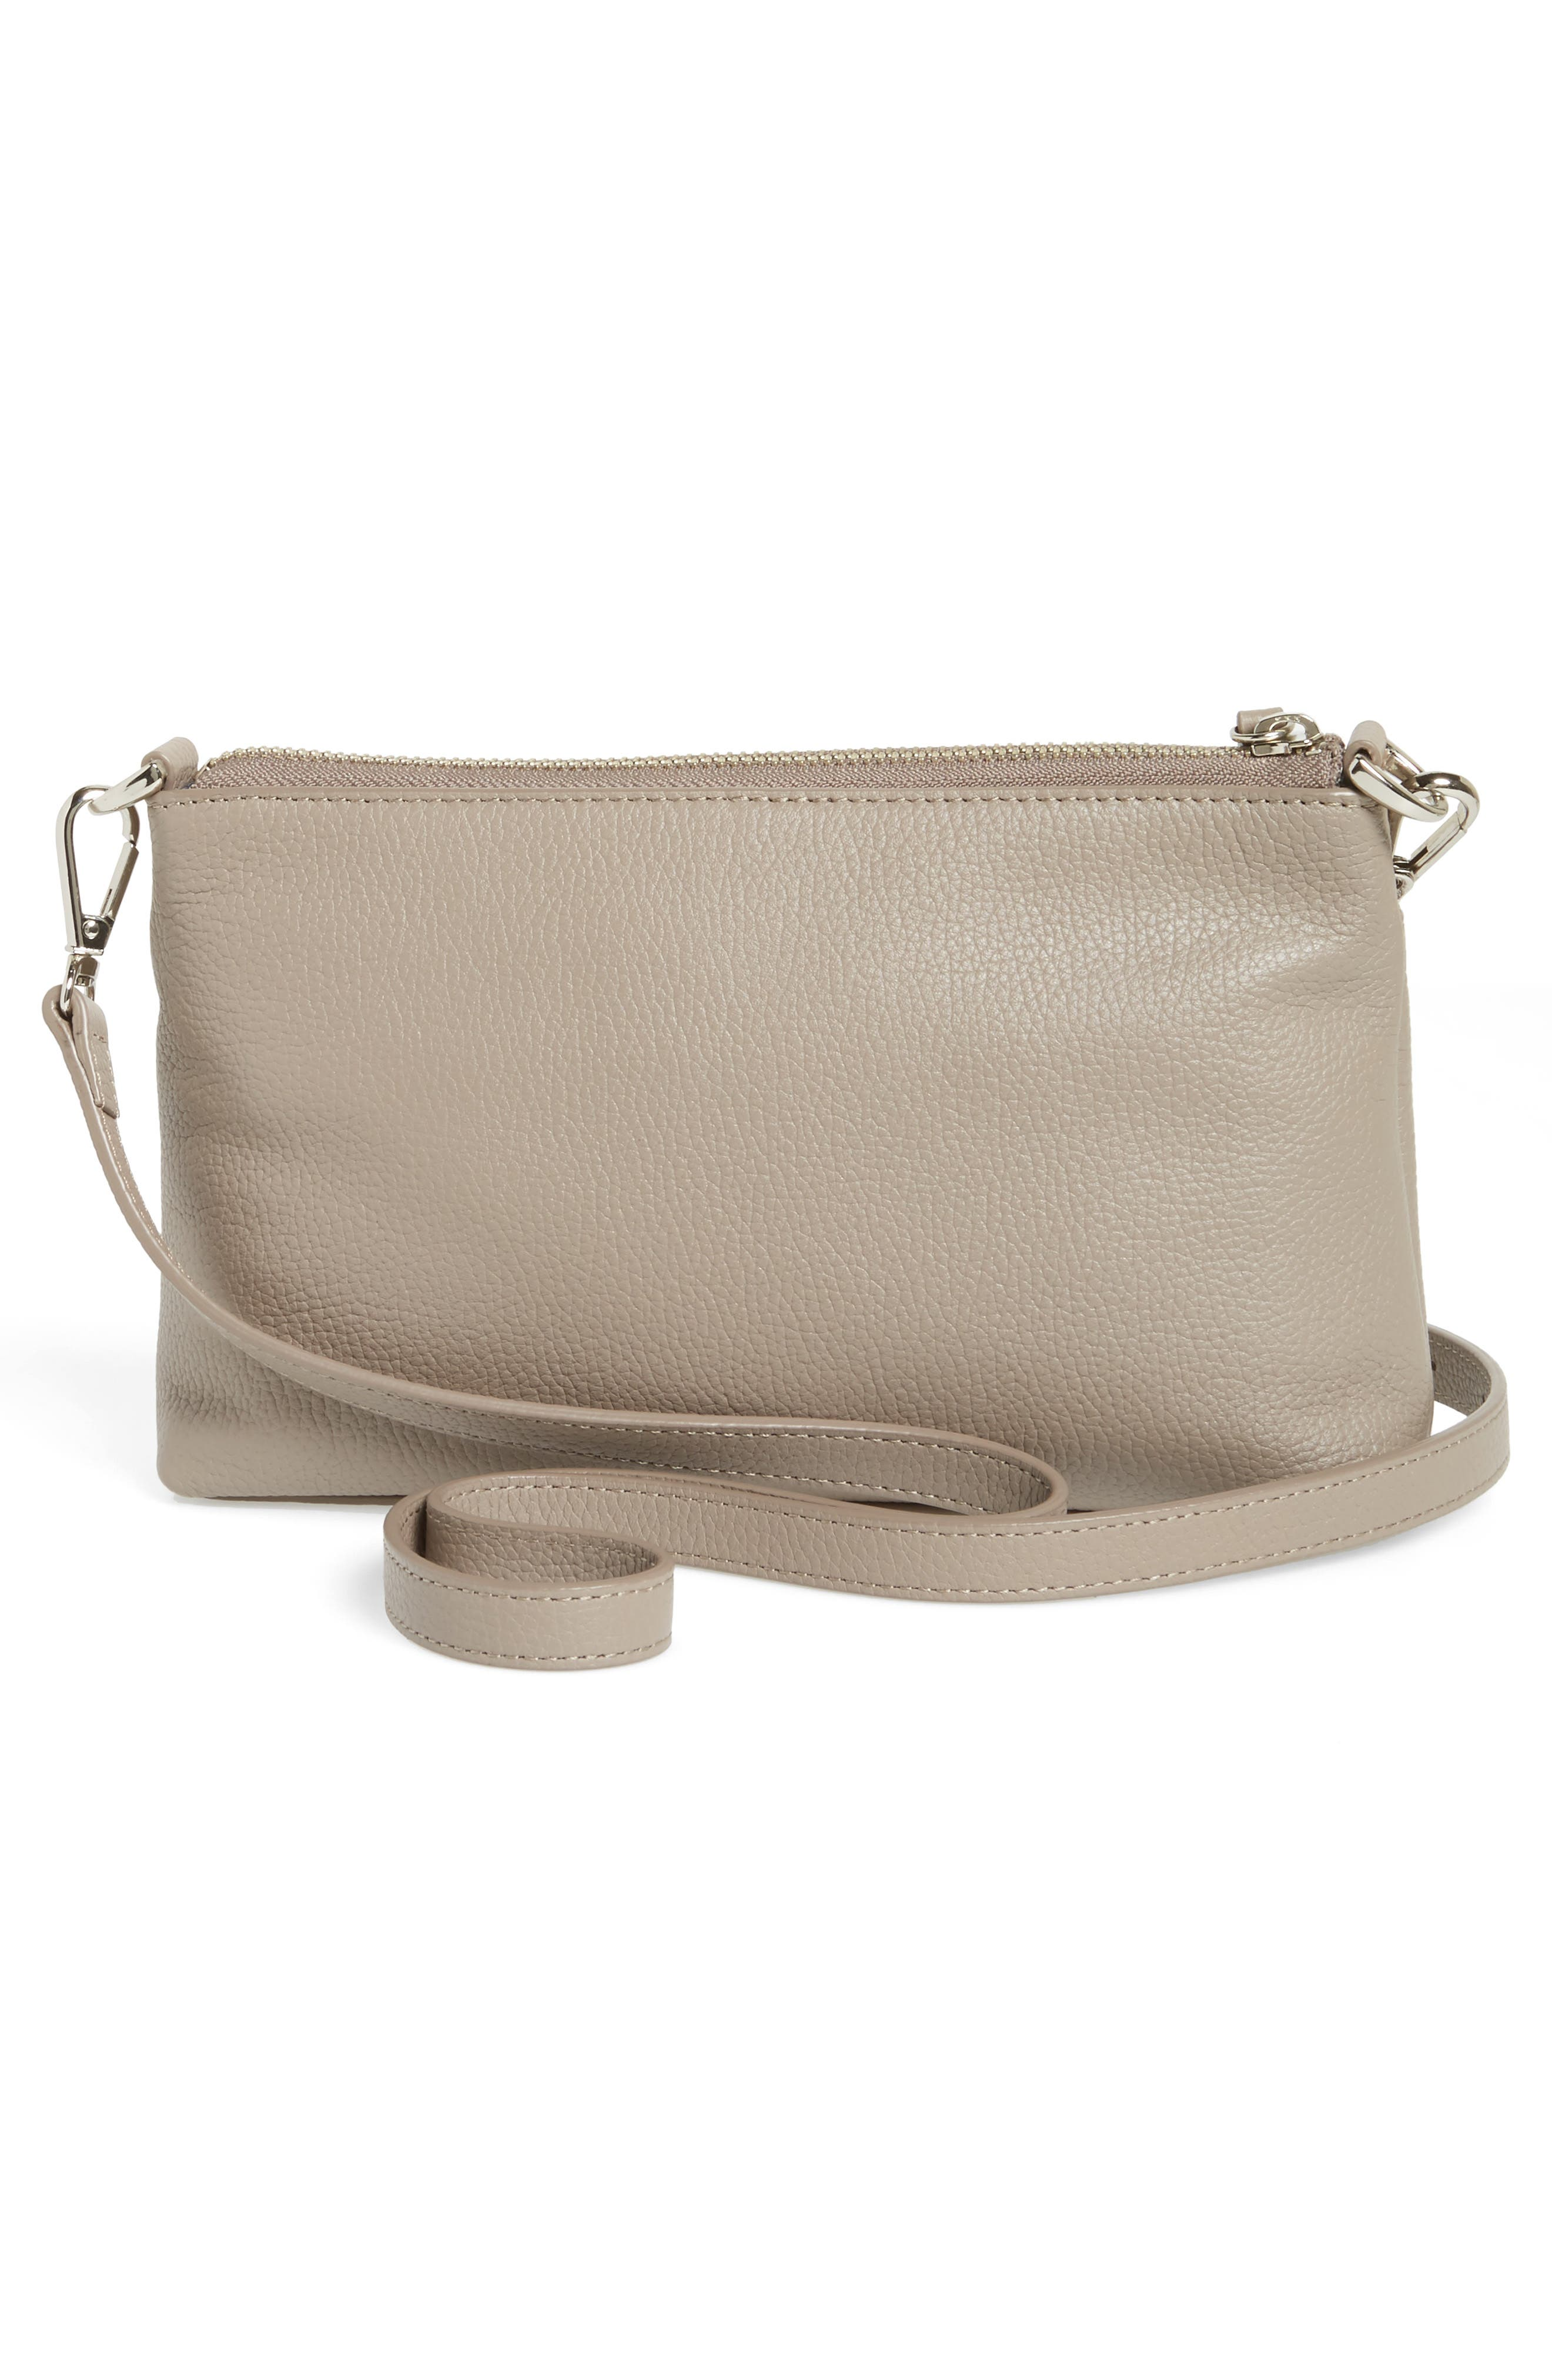 Brixton Convertible Leather Crossbody Bag with Pop-Out Card Holder,                             Alternate thumbnail 4, color,                             GREY TAUPE